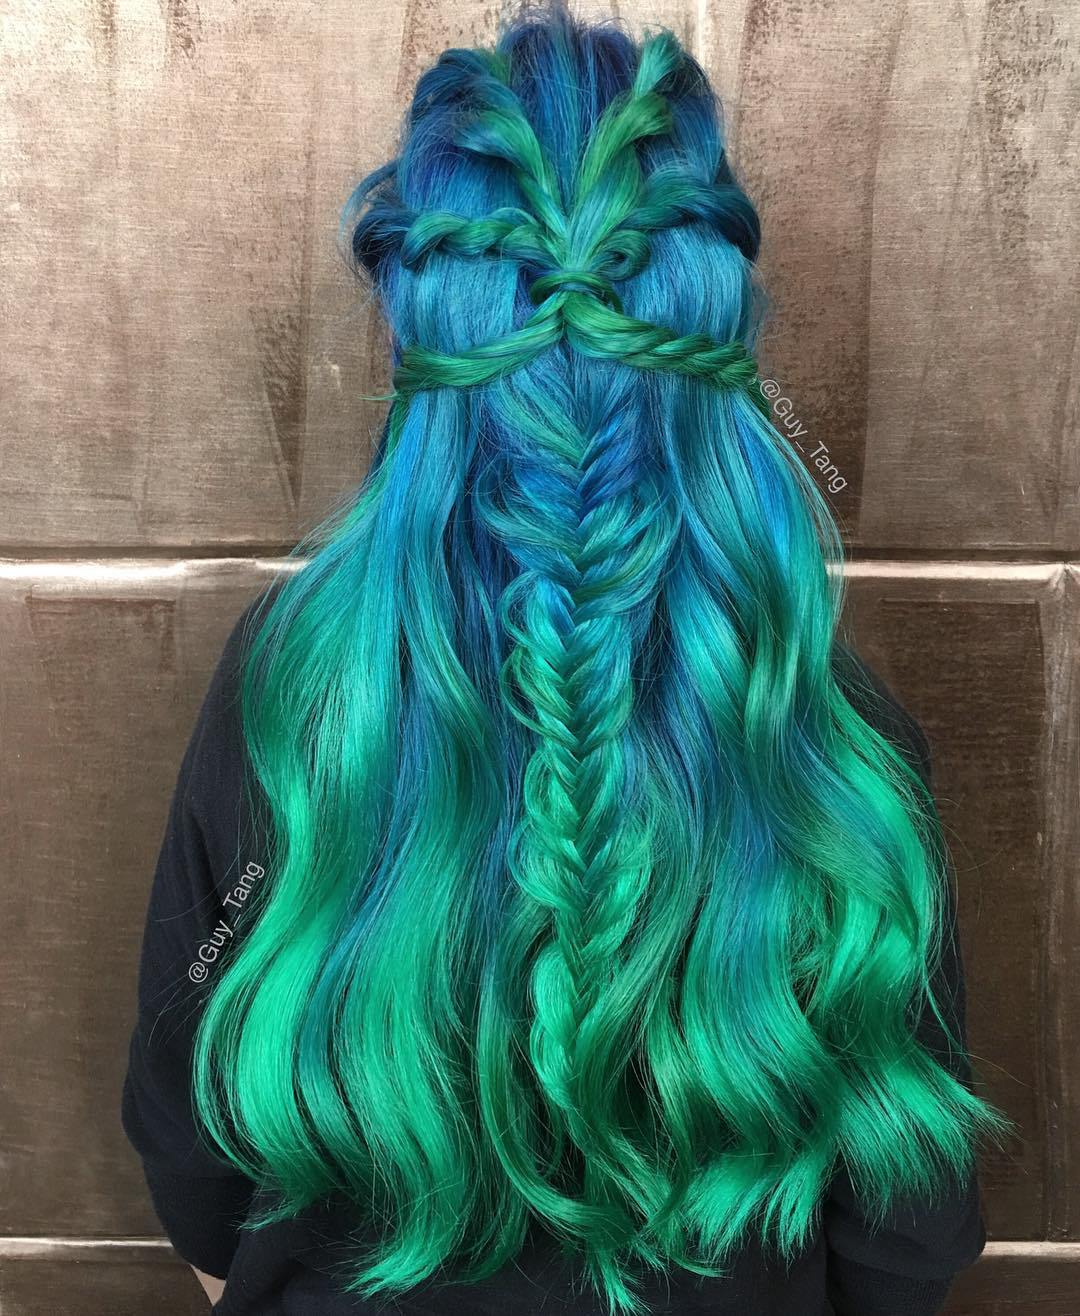 Green Hair Color Ideas For 2017 2019 Haircuts Hairstyles And Hair